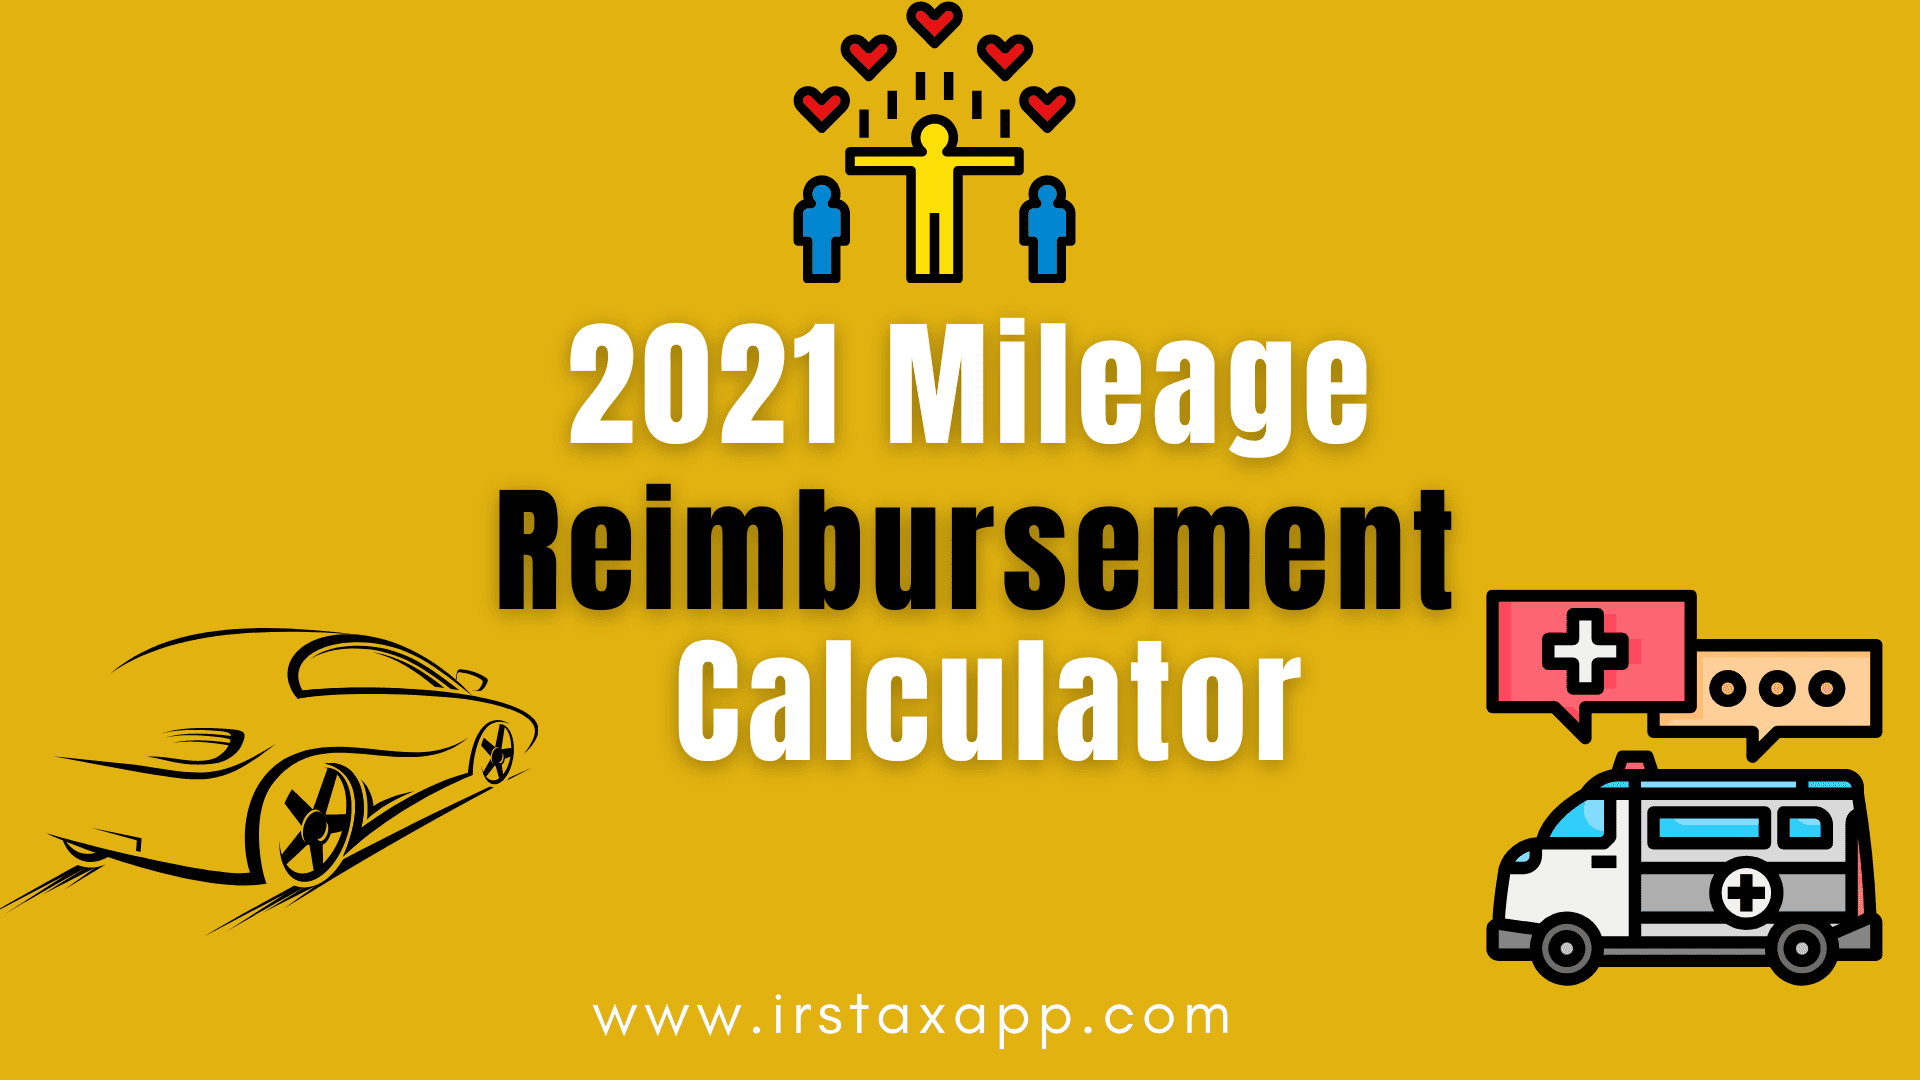 2021 gas mileage reimbursement calculator